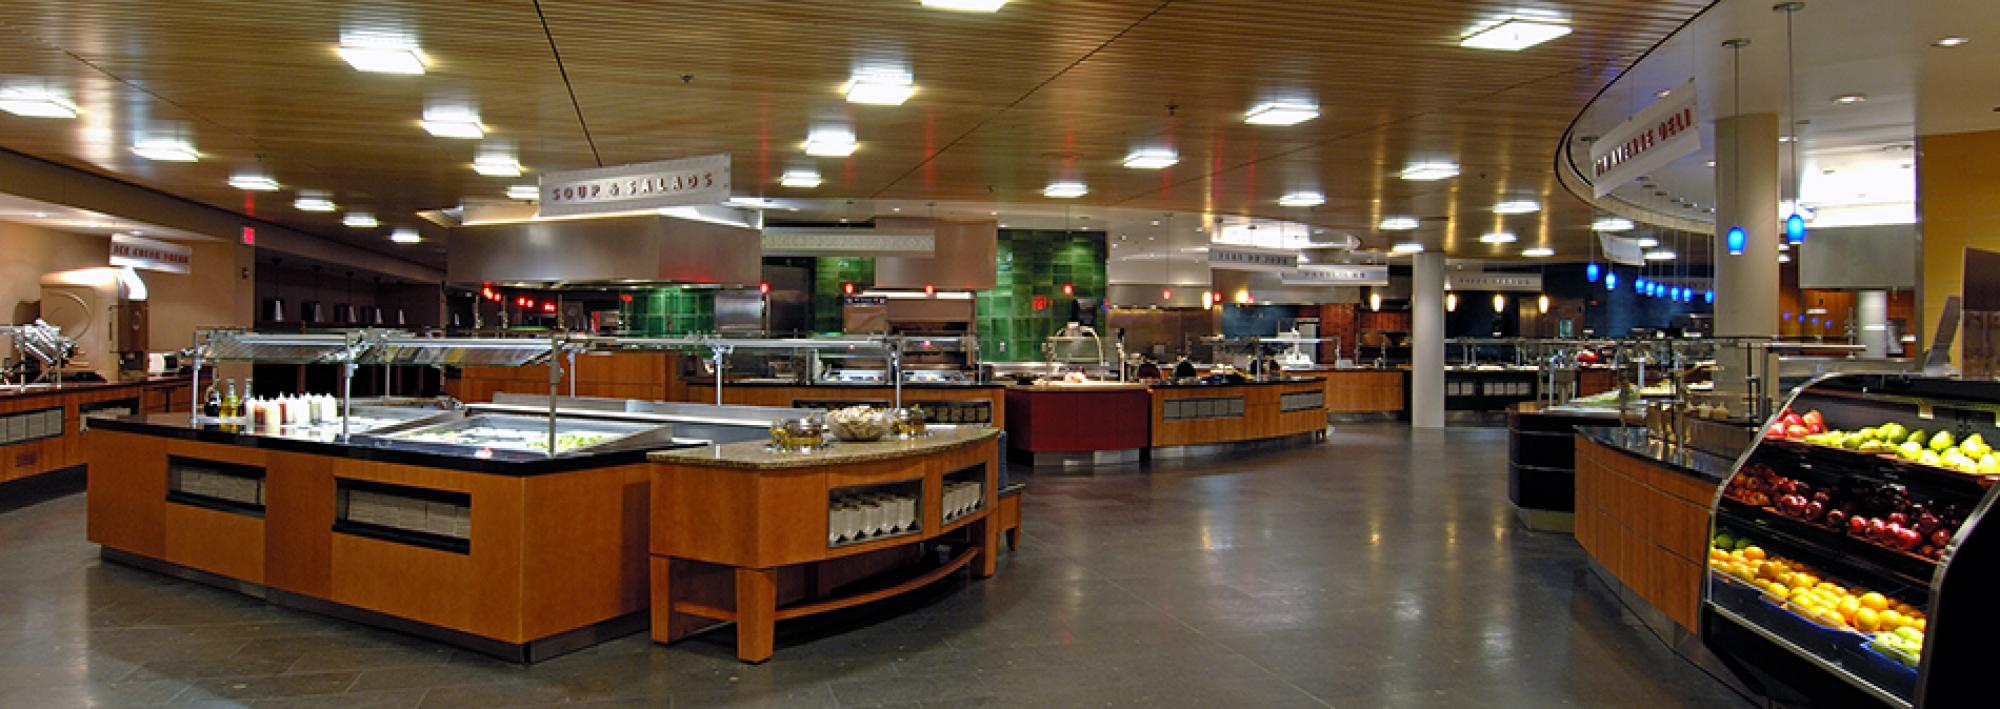 Dining services grinnell college for Dining hall pictures home